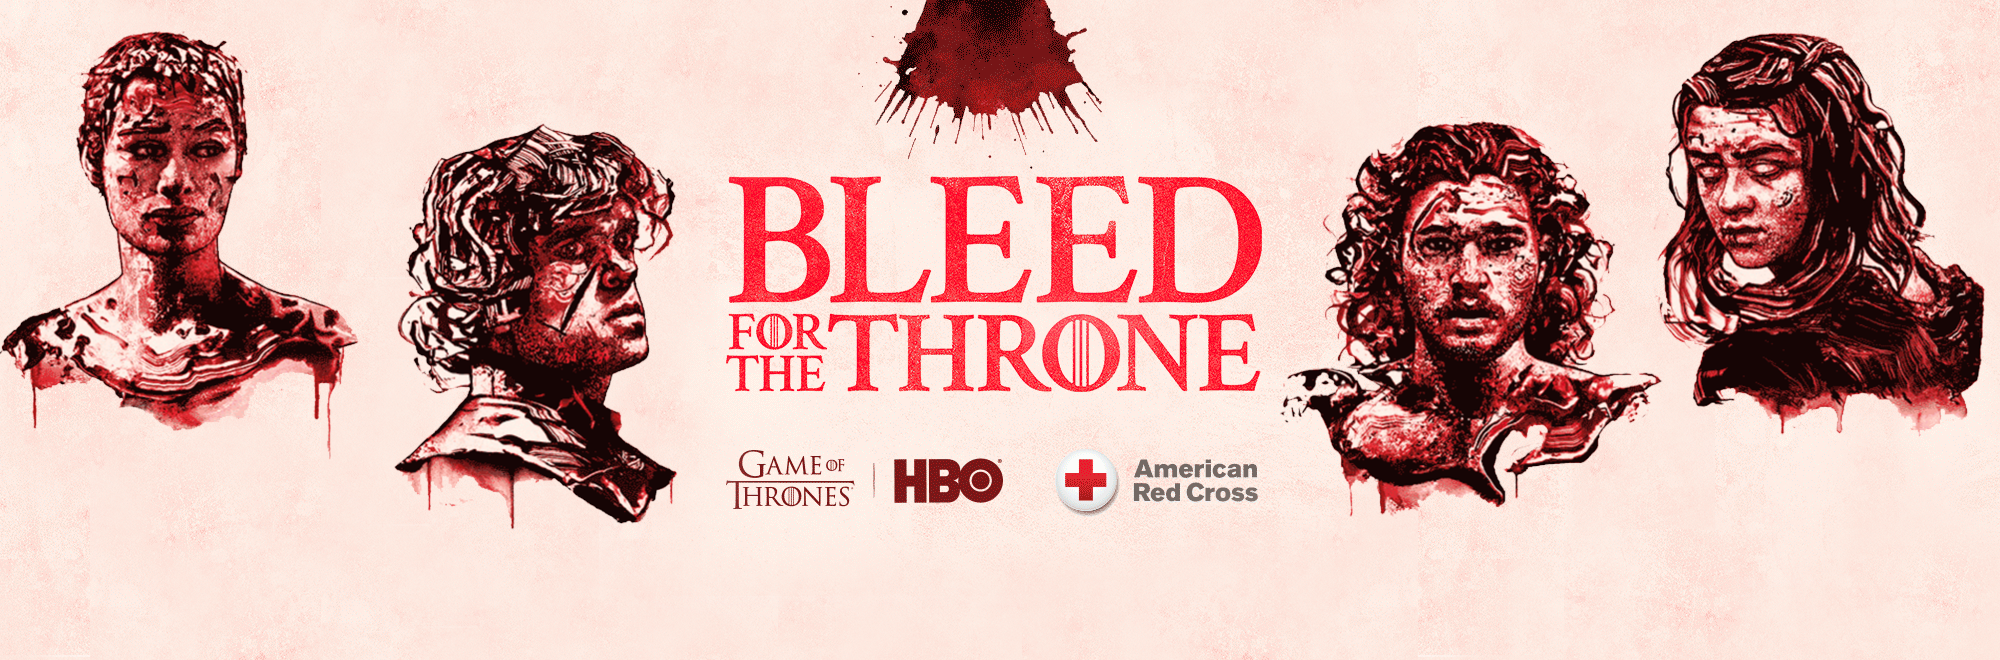 How Game of Thrones maker HBO joined forces with the Red Cross to increase blood donations